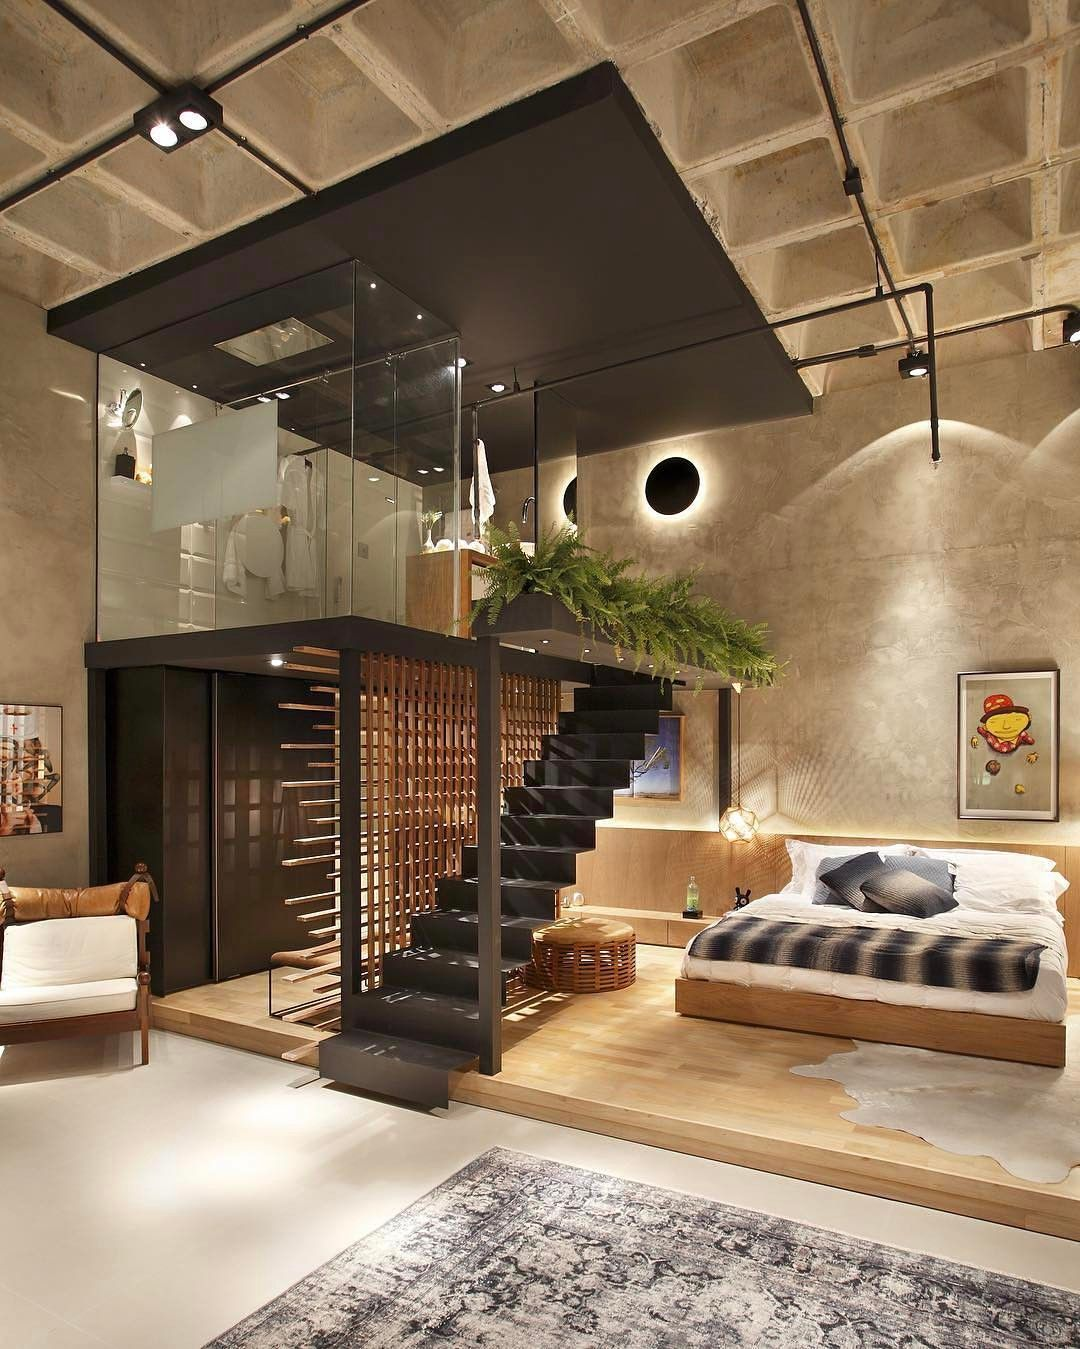 How Do You Design Home For Someone With >> Pin By Quenn Yang On Home Interior Design Loft Design House